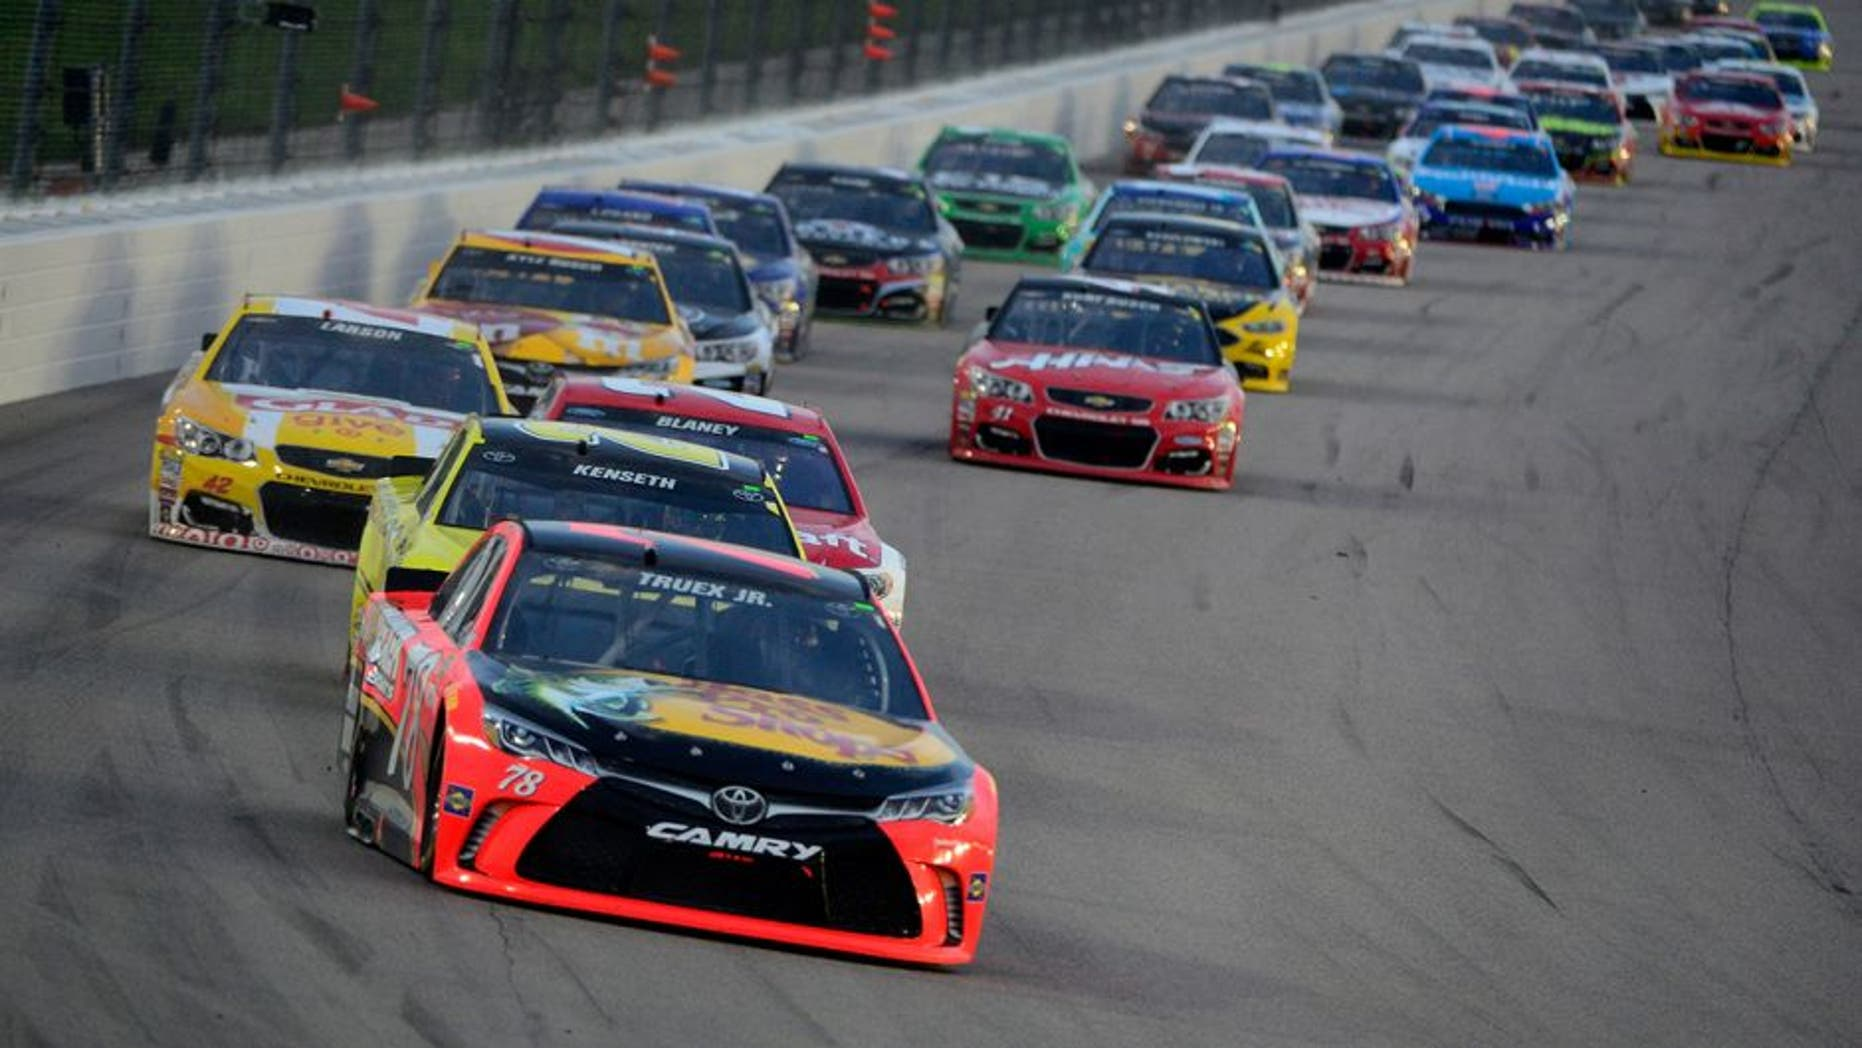 KANSAS CITY, KS - MAY 07: Martin Truex Jr., driver of the #78 Bass Pro Shops/TRACKER Boats Toyota Toyota, and Matt Kenseth, driver of the #20 Dollar General Toyota, leads the field during the NASCAR Sprint Cup Series Go Bowling 400 at Kansas Speedway on May 7, 2016 in Kansas City, Kansas. (Photo by Robert Laberge/NASCAR via Getty Images)